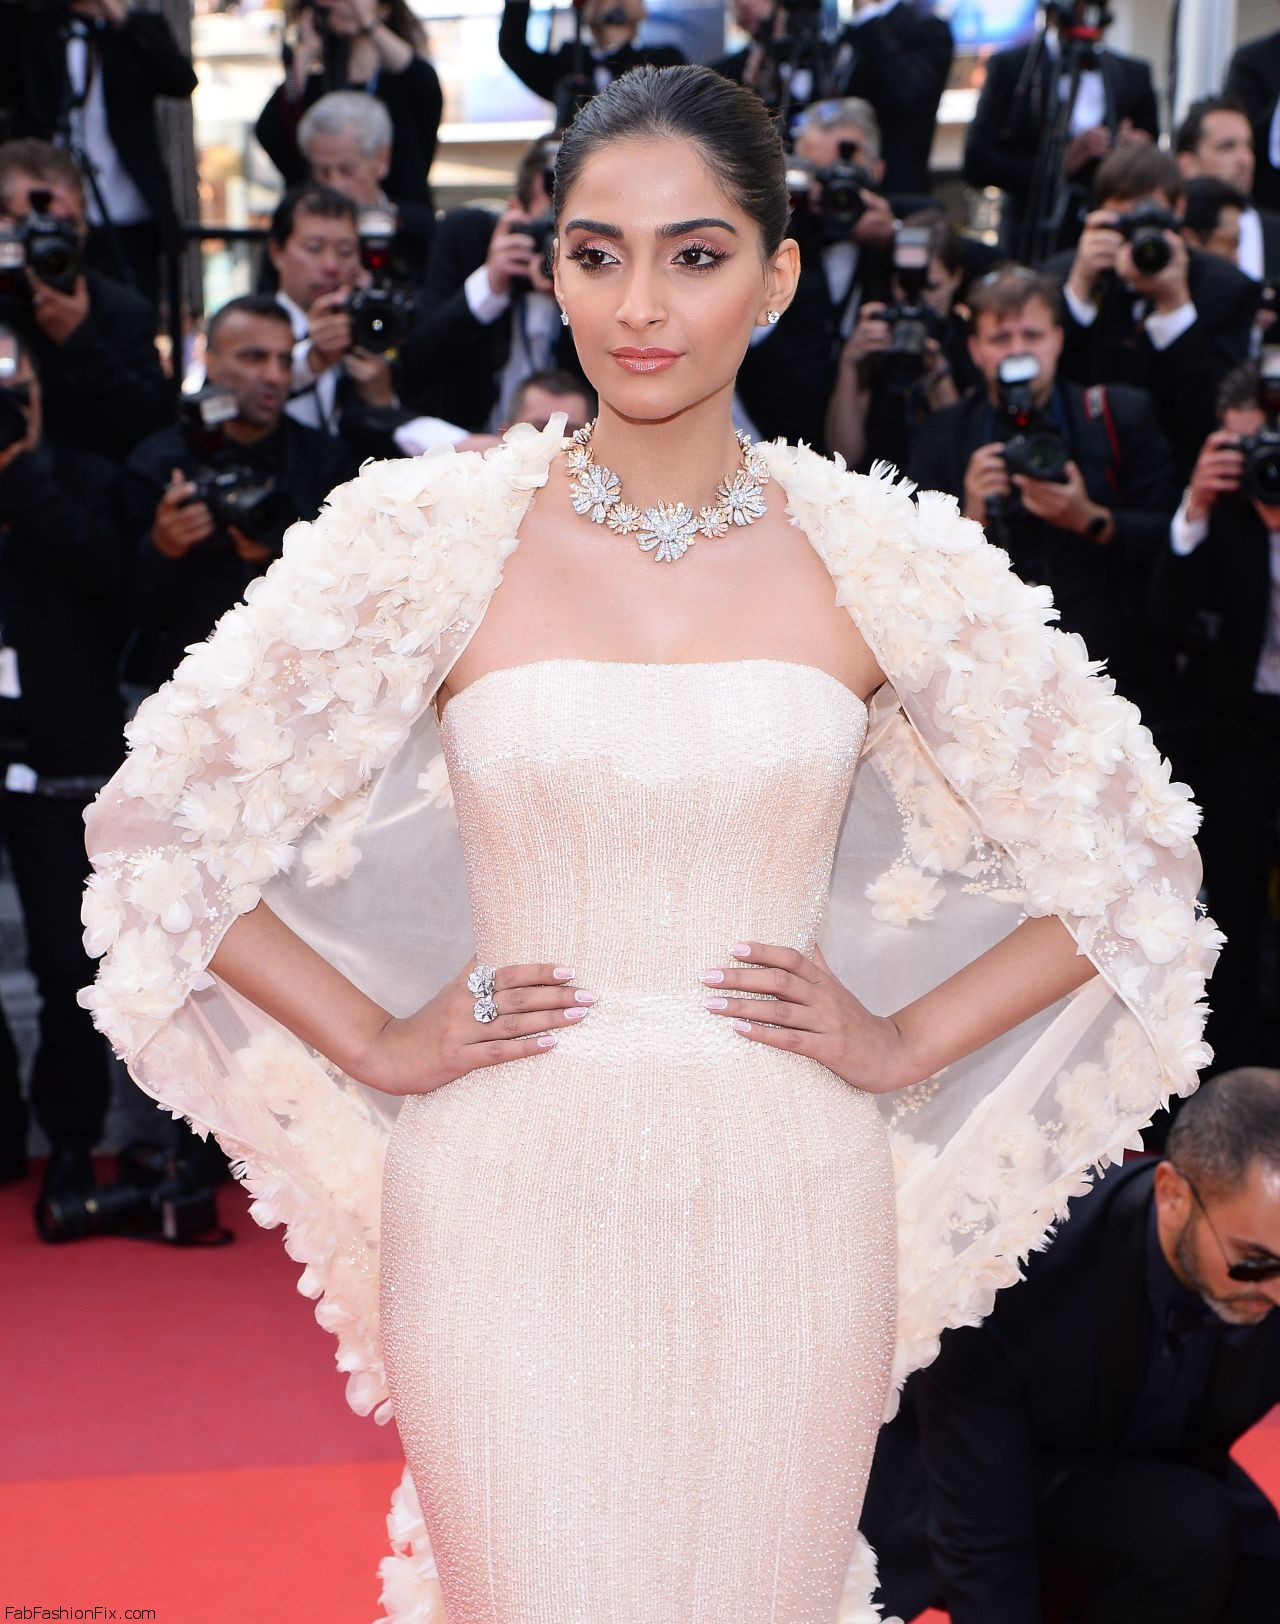 sonam-kapoor-the-loving-premiere-at-69th-cannes-film-festival-5-16-2016-6